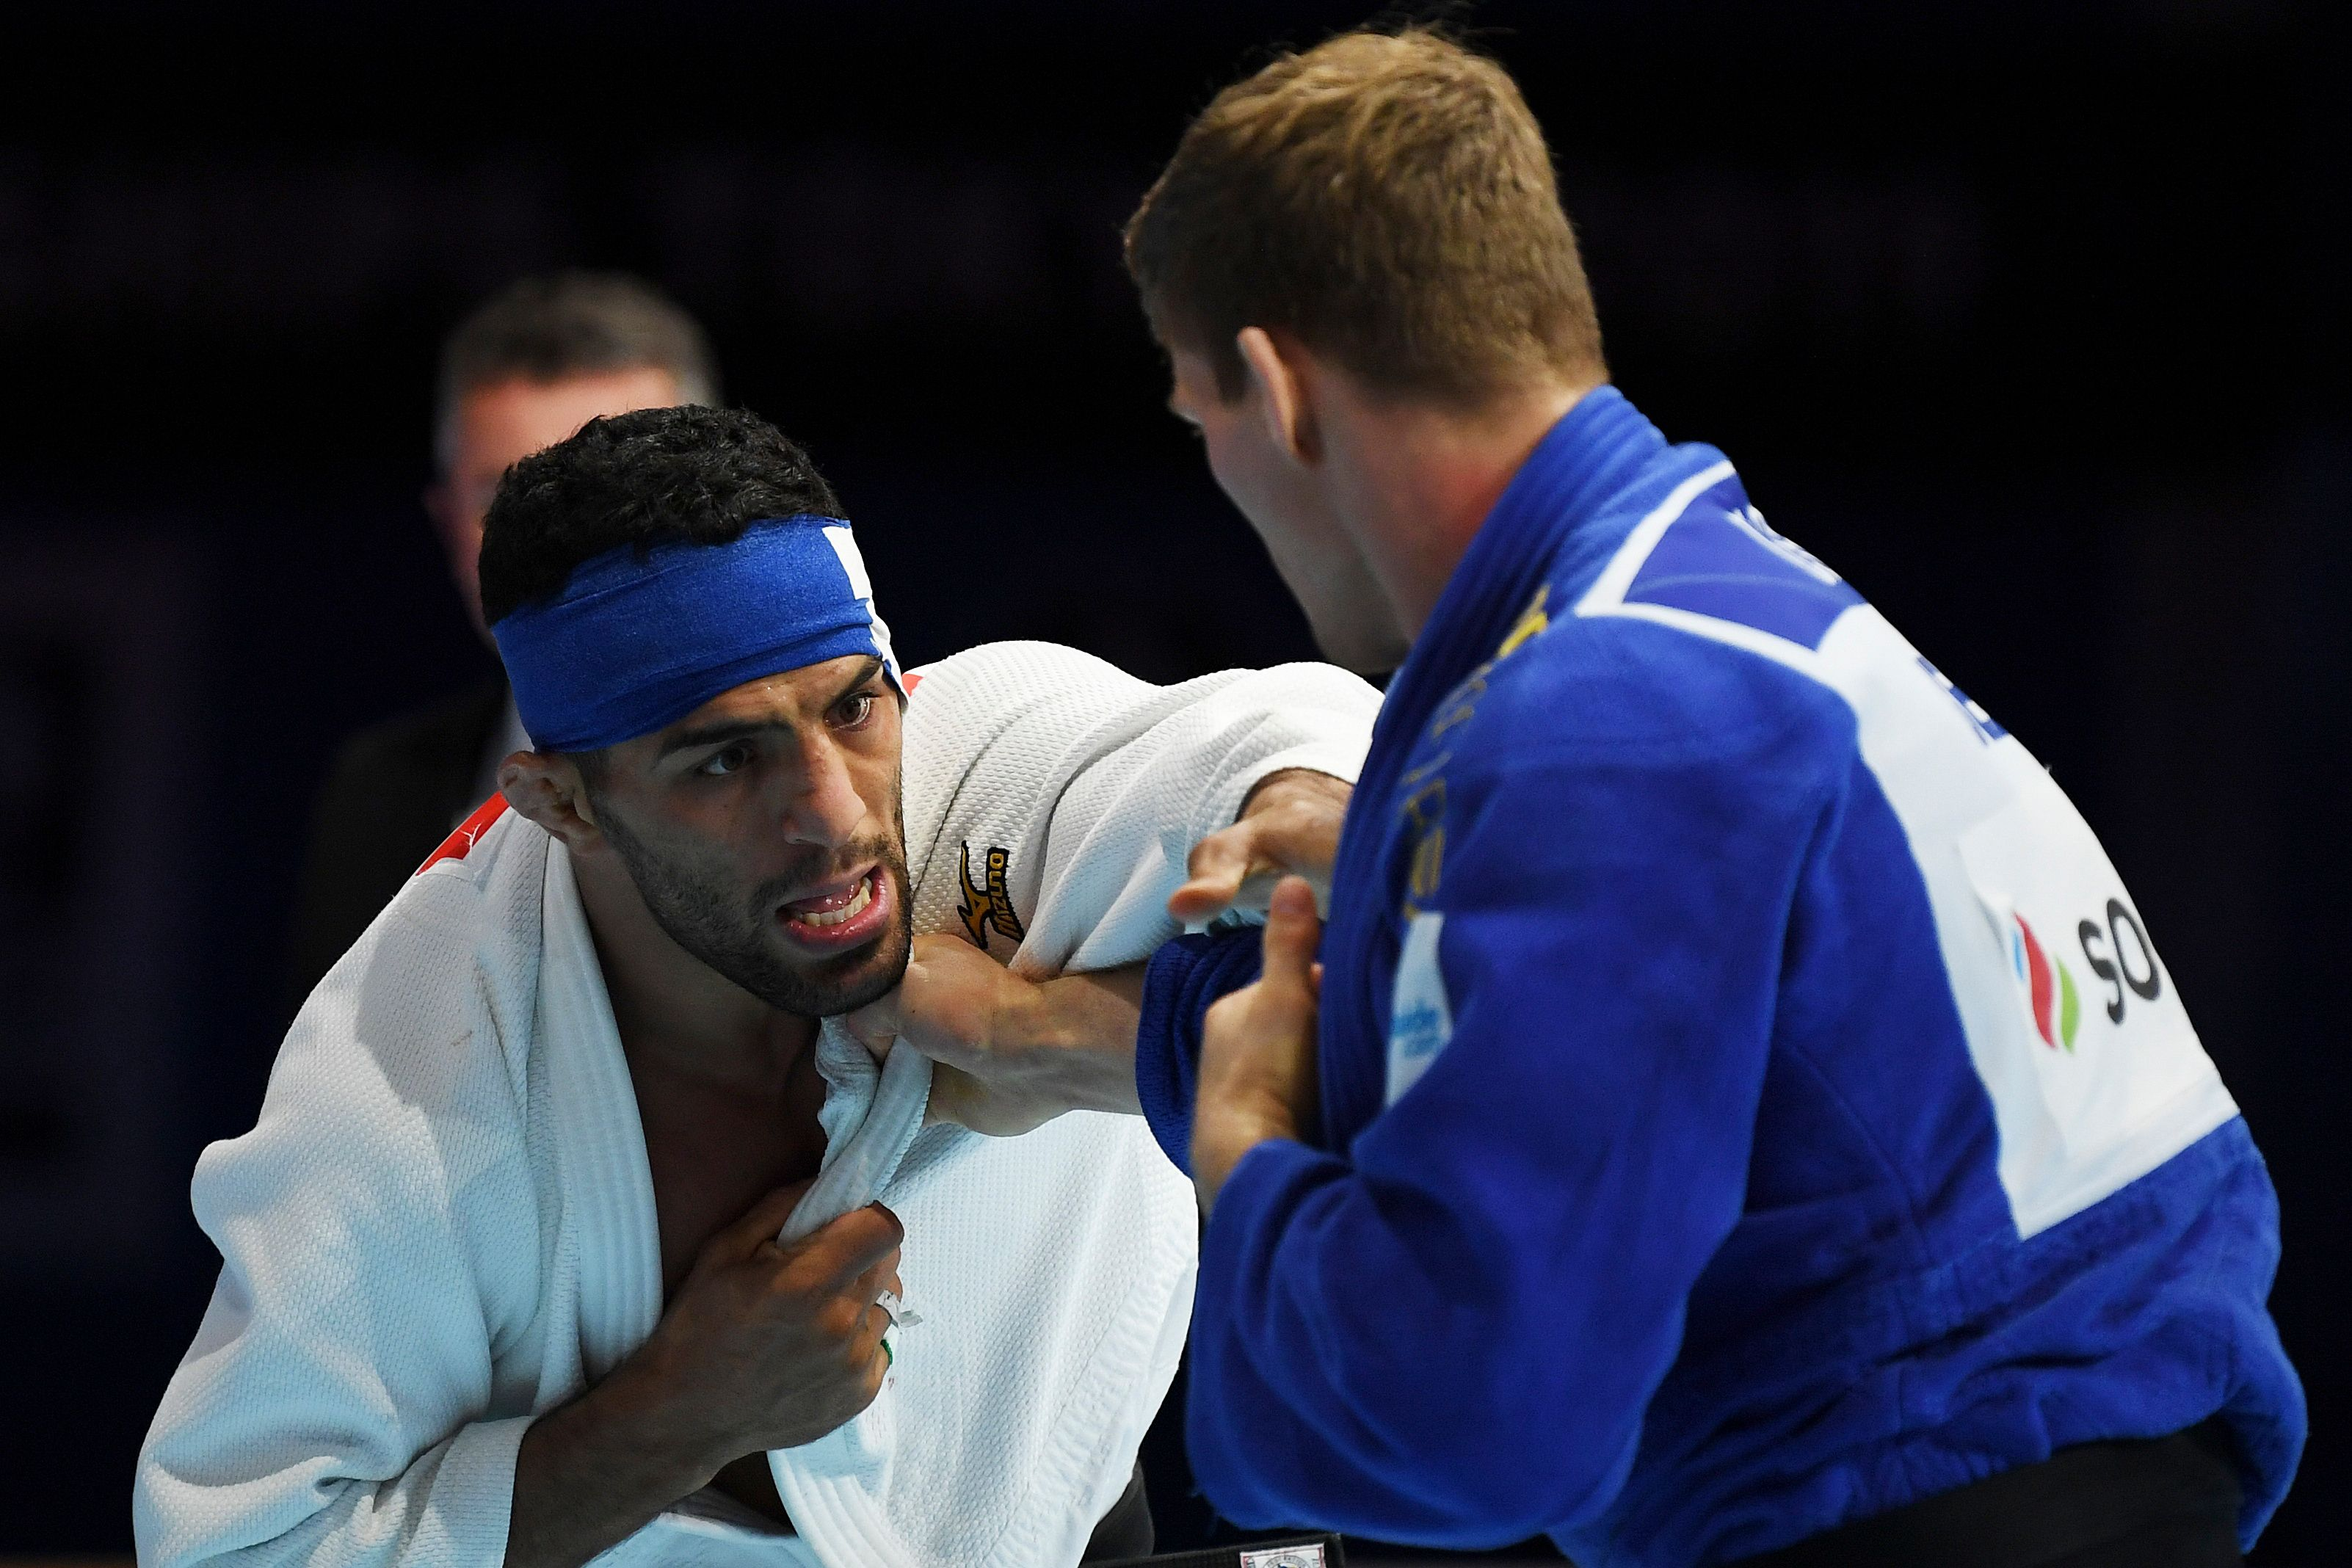 Iranian judoka Saeid Mollaei says he'll never forget kindness of Israeli team ahead of Tel Aviv tournament